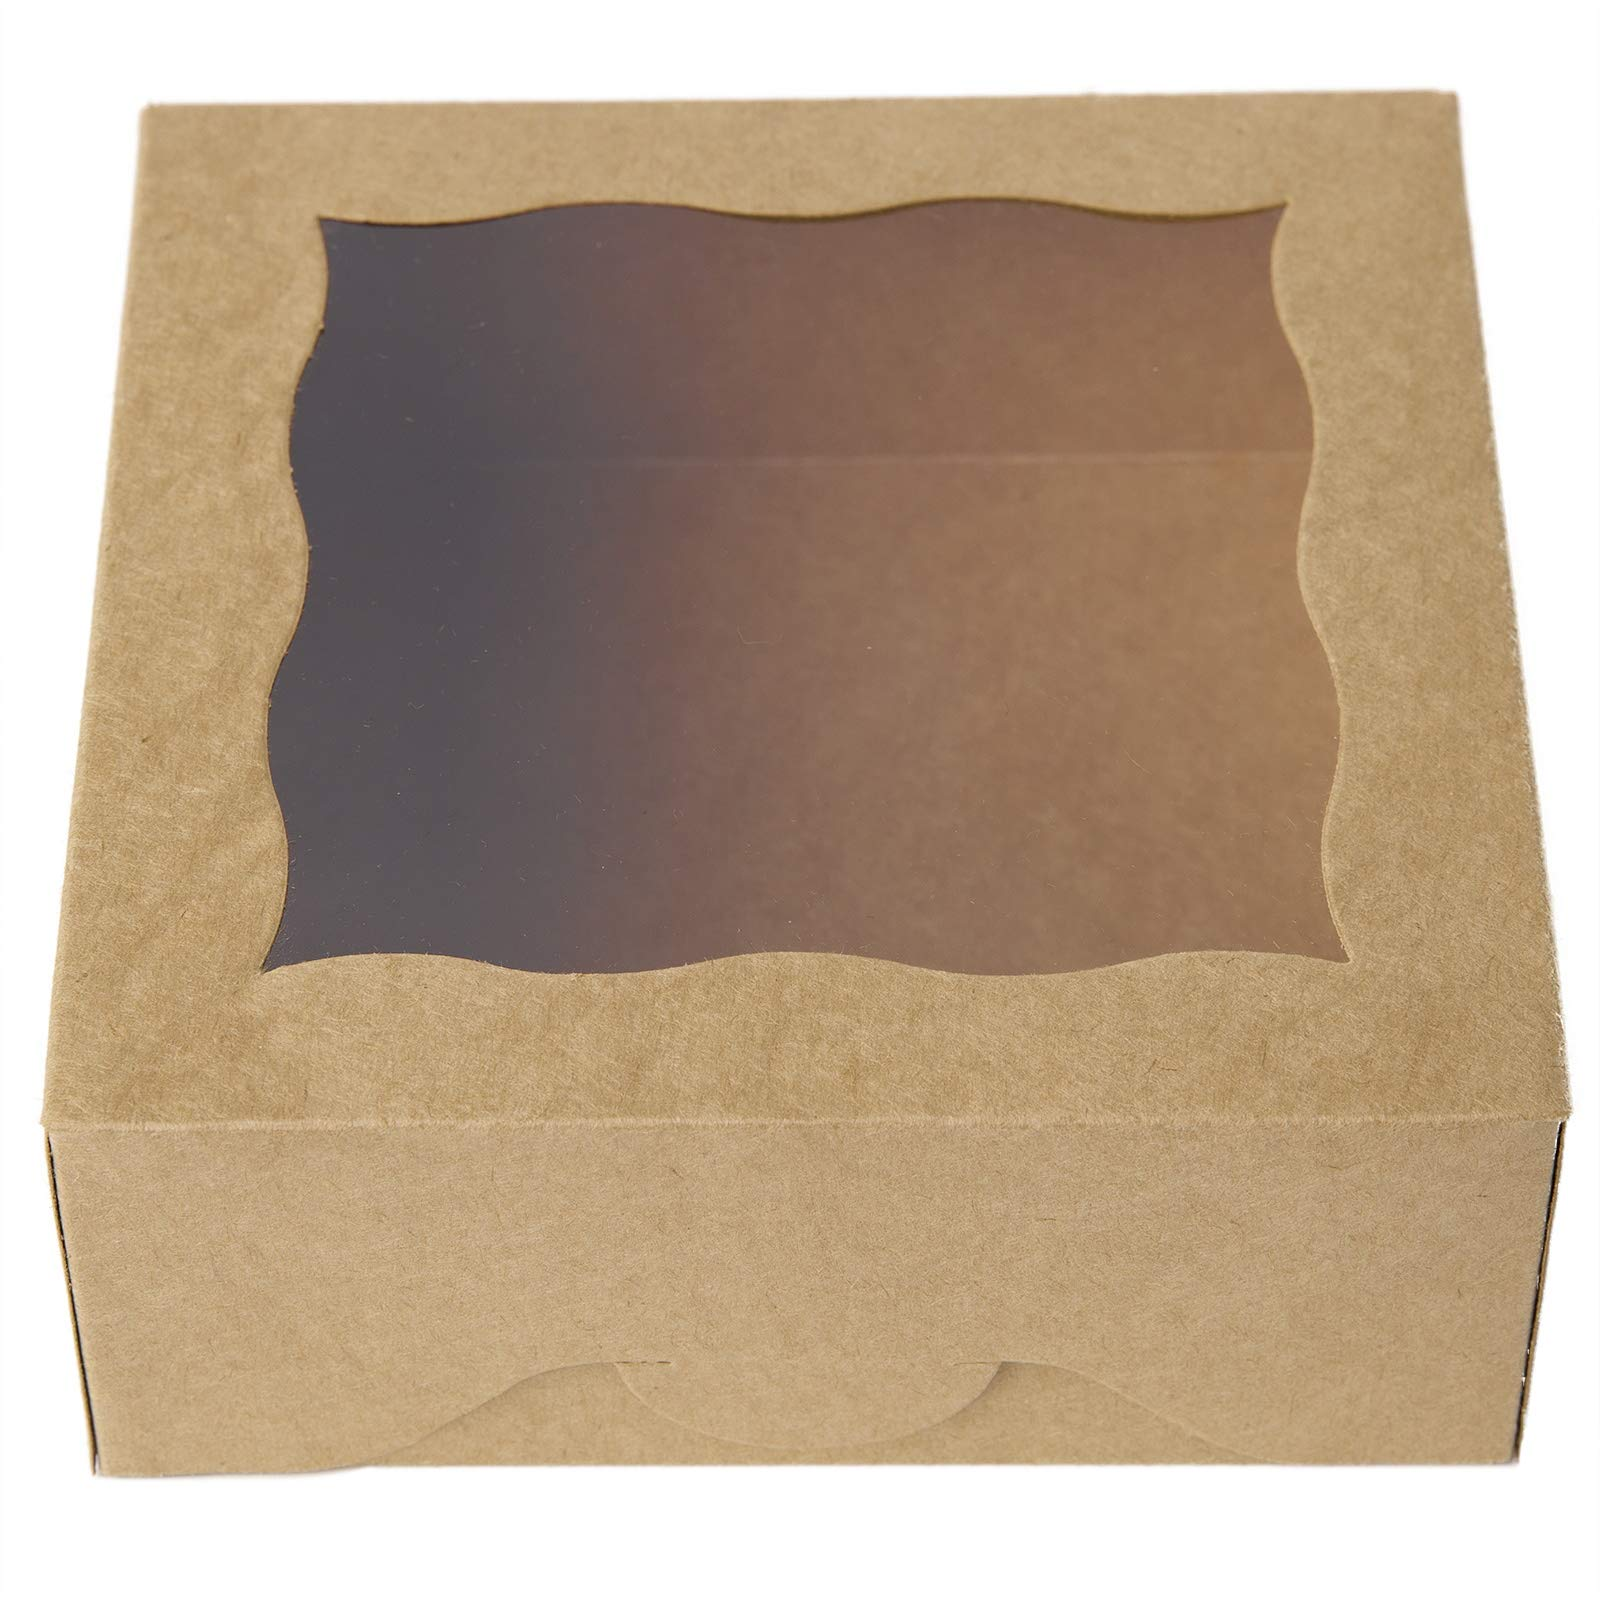 [25pcs]ONE MORE 6''Brown Bakery Boxes with pvc Window for Pie and Cookies Boxes Small Natural Craft Paper Box,6x6x2.5inch(Brown,25) by ONE MORE